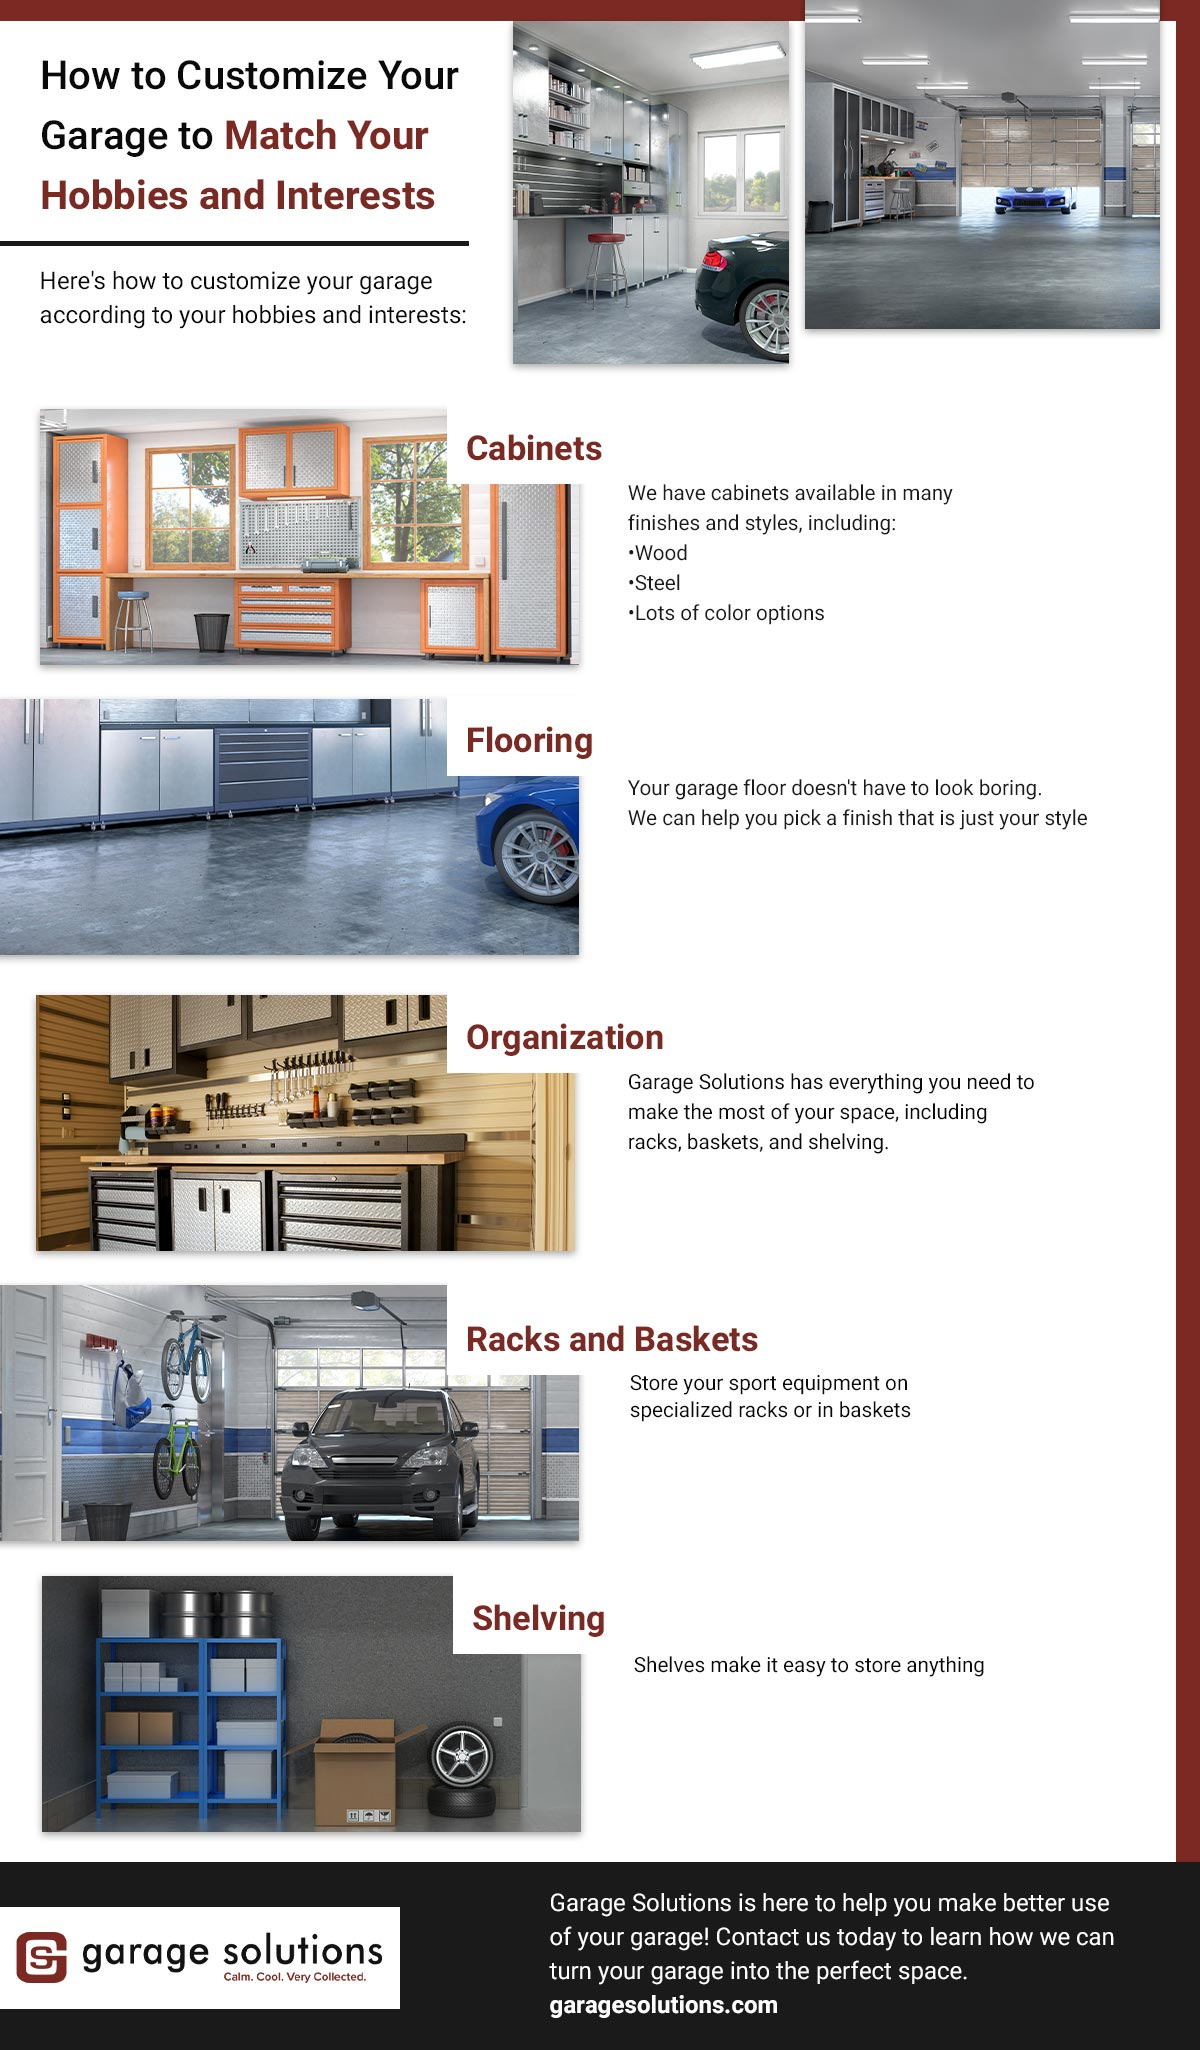 infographic about ways to organize your garage with help from garage solutions